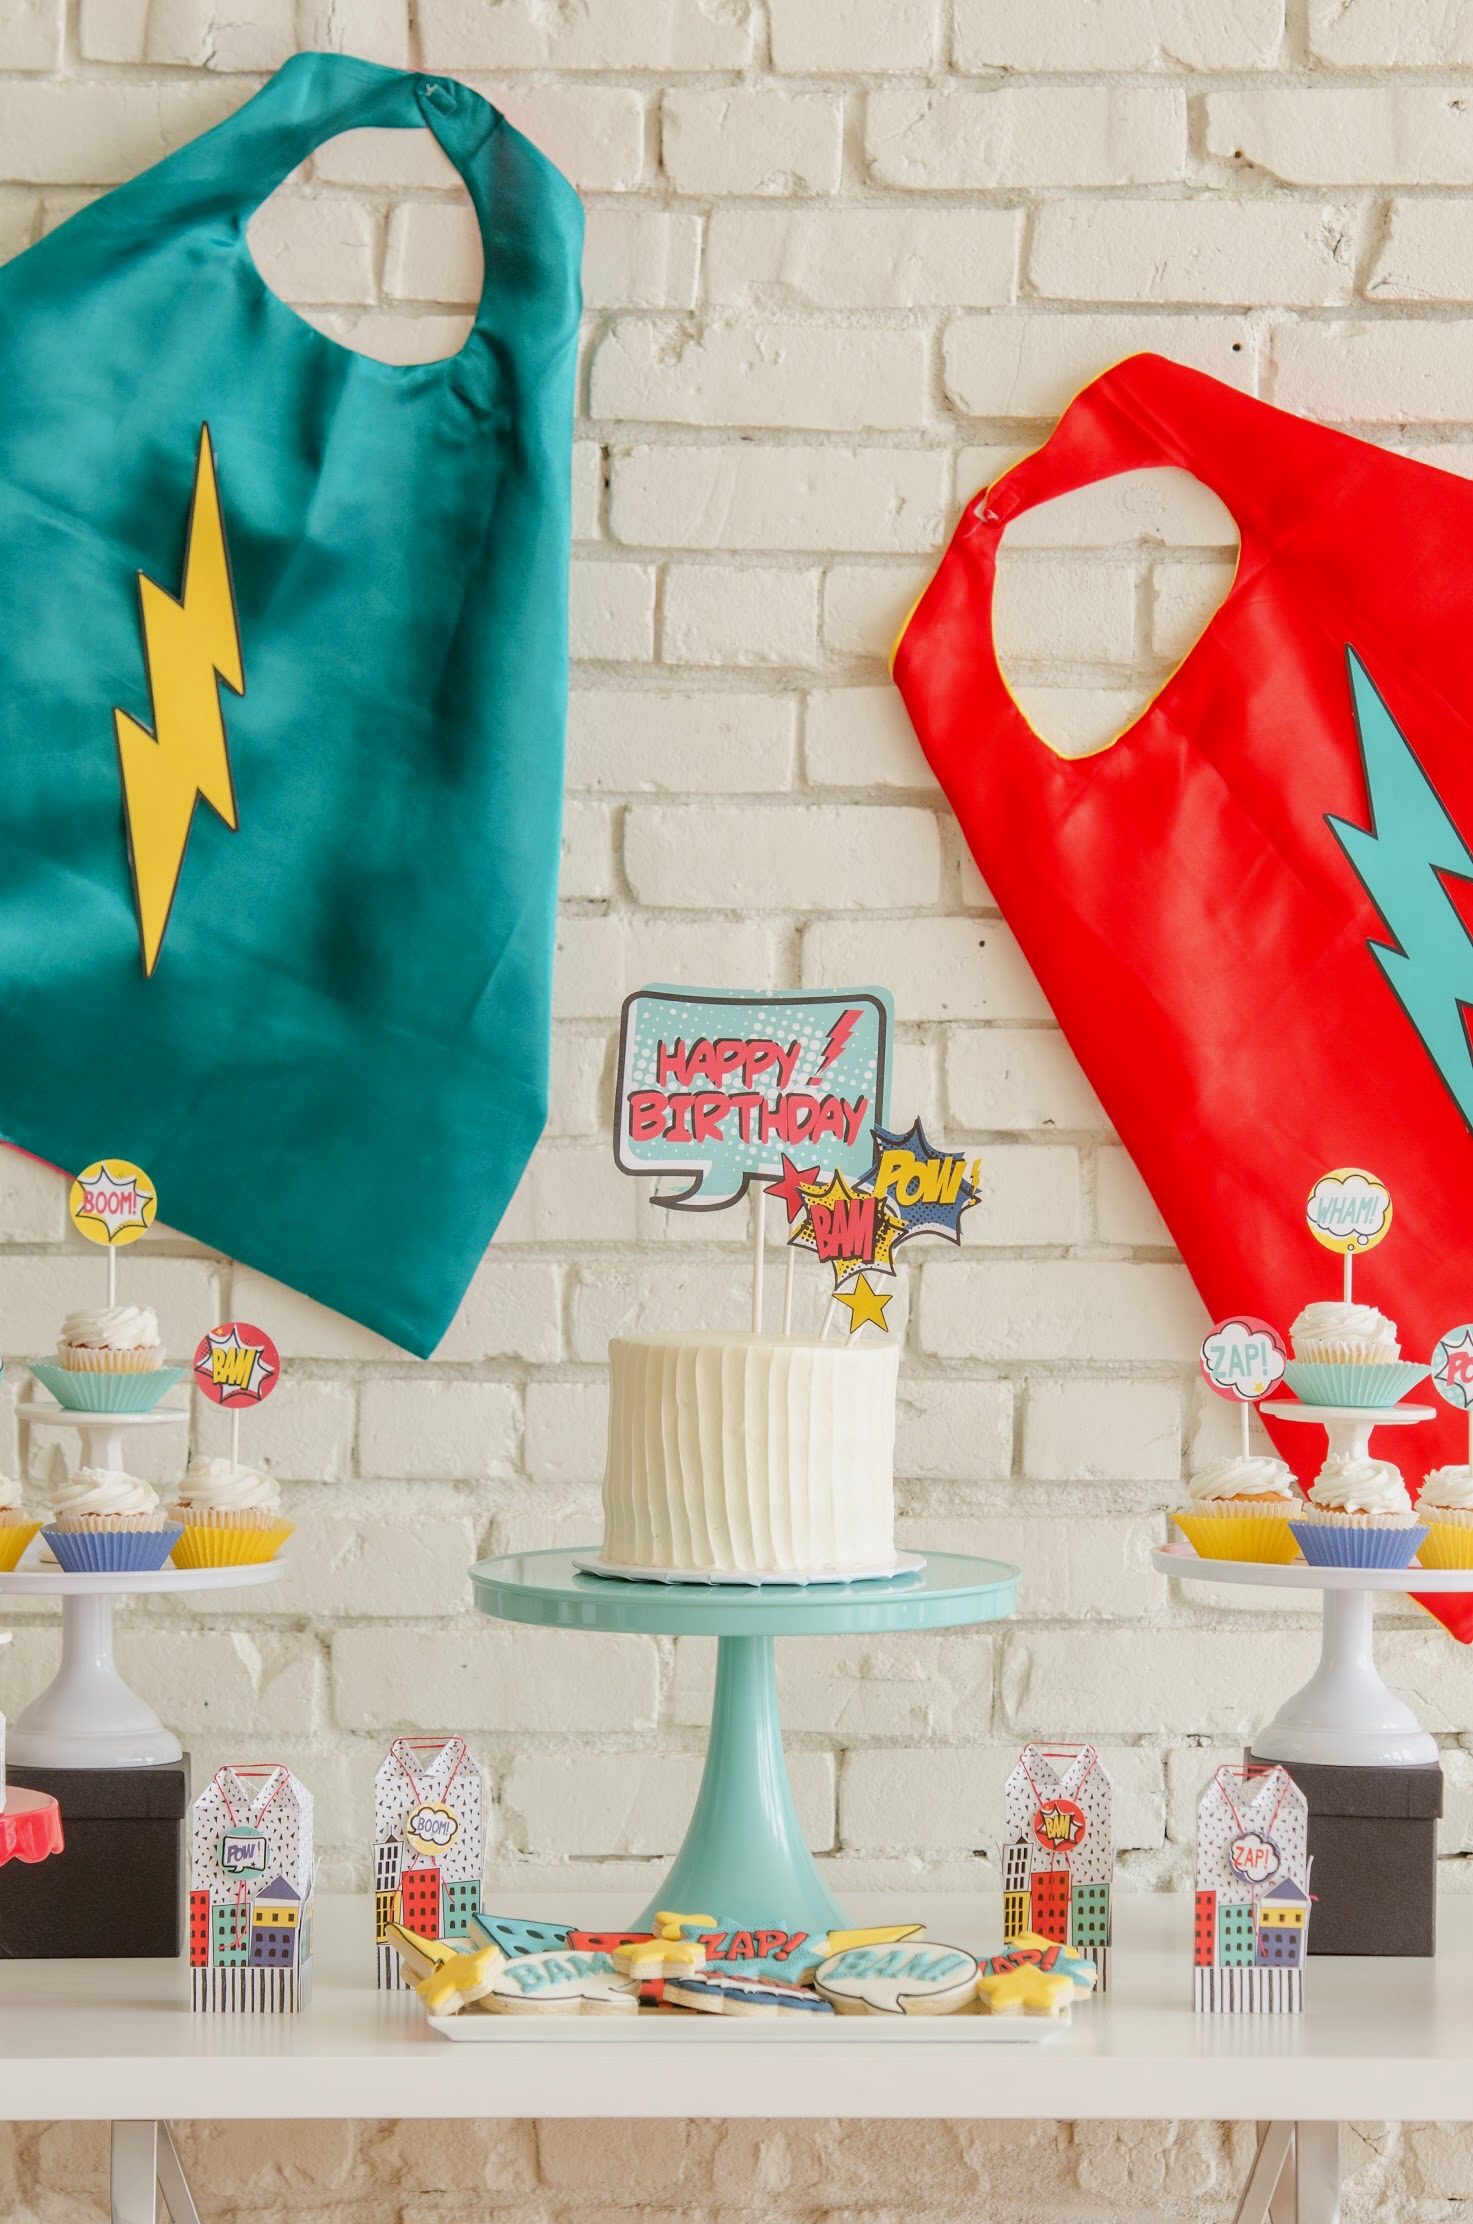 Superhero party ideas from Mint Event Design